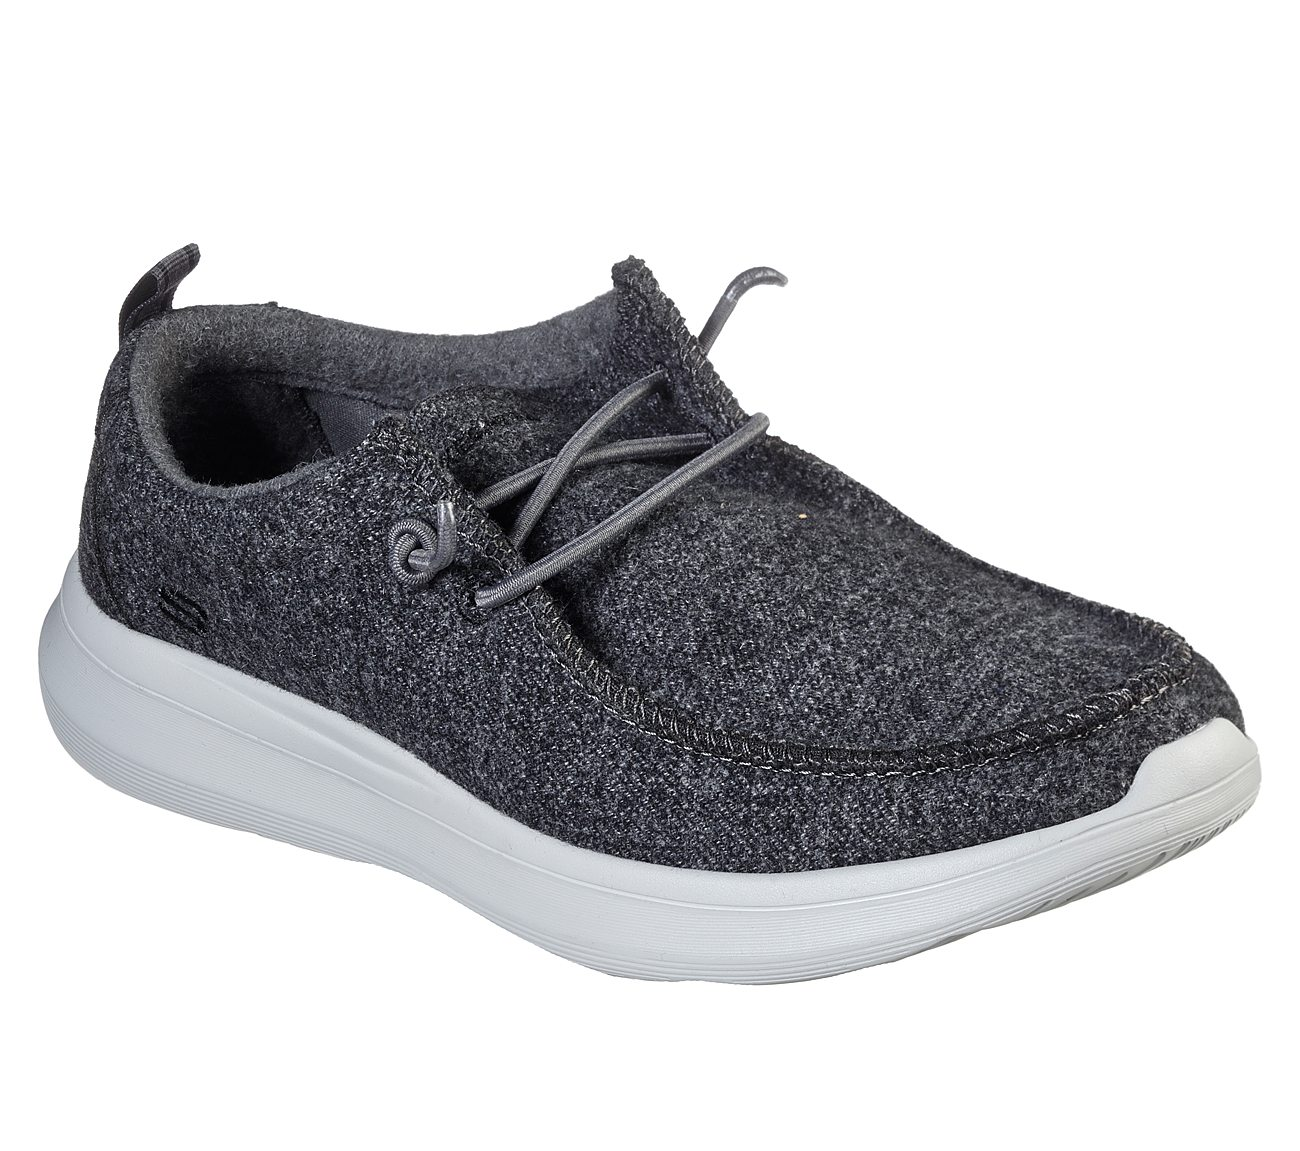 Buy SKECHERS Wash A Wools: Expected Pitzen USA Casuals